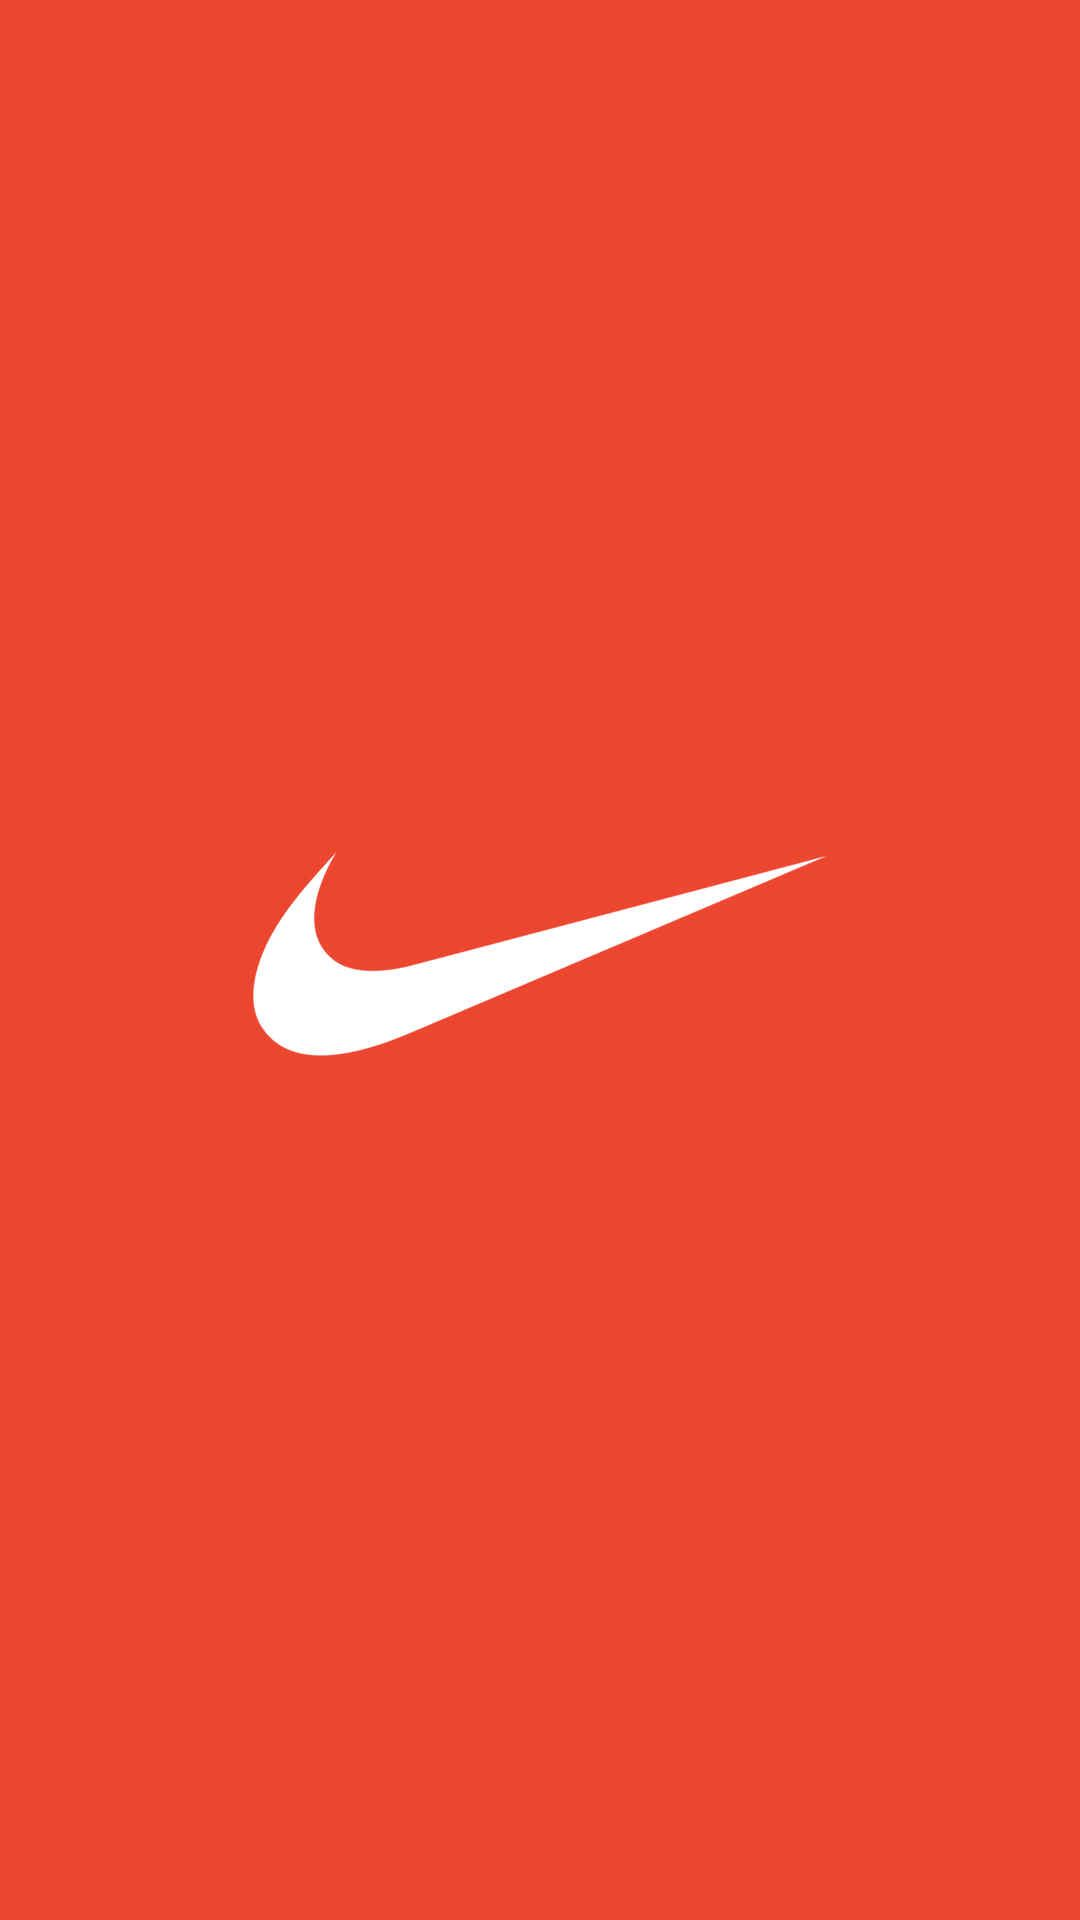 Nike Wallpapers Red - Wallpaper Cave